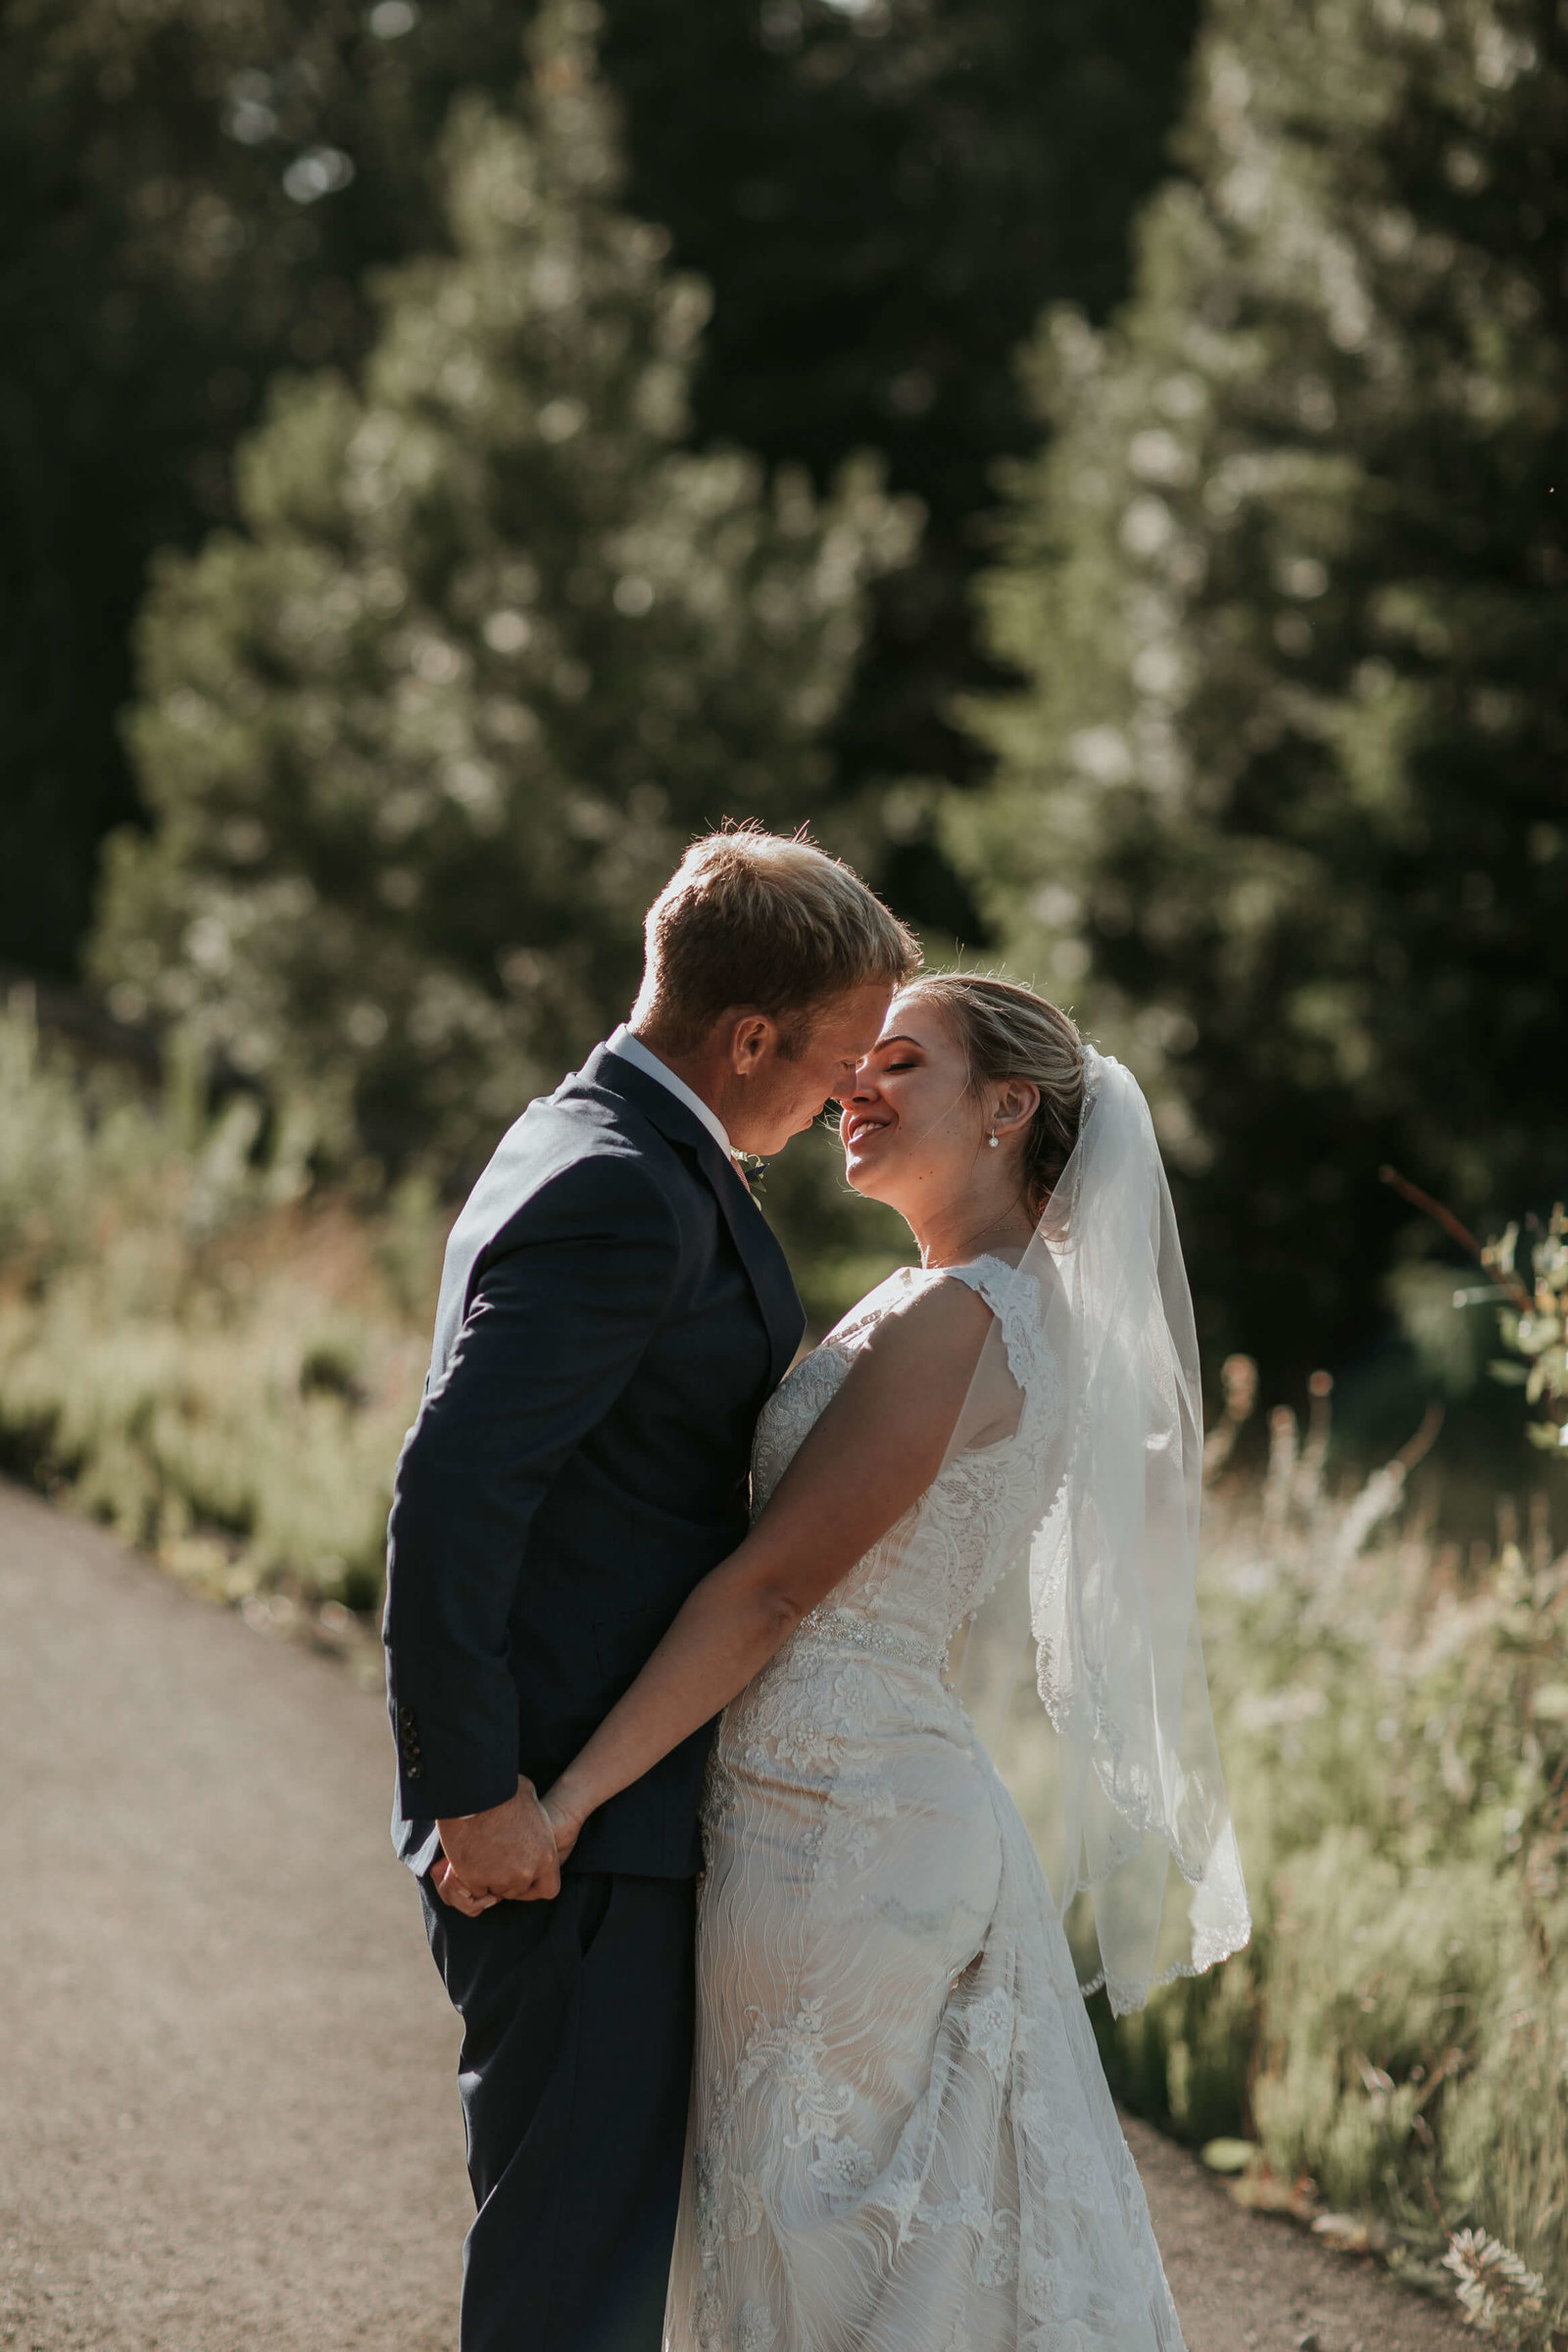 Swiftwater-Cellars-wedding-Lauren-Peter-June-22-by-adina-preston-photography-287